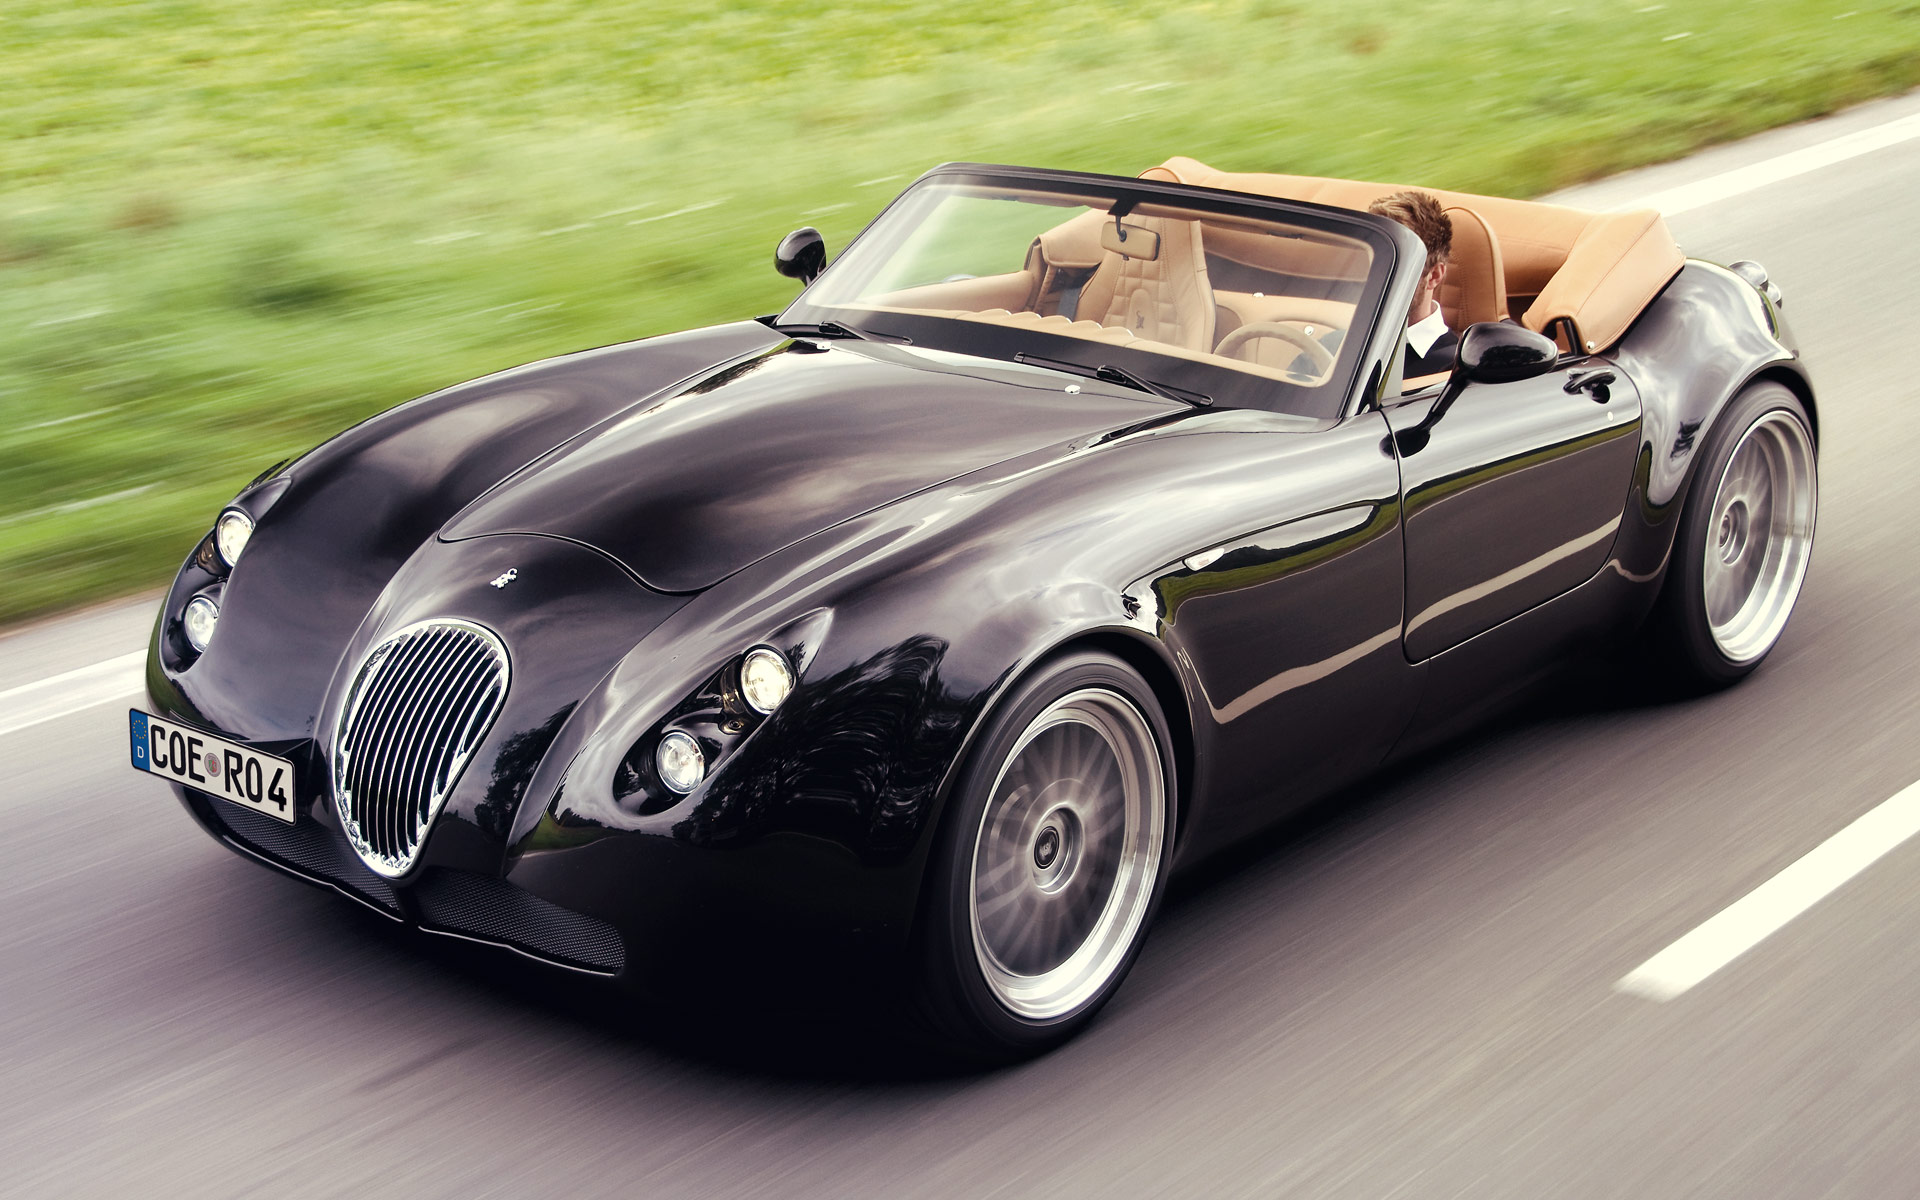 1920x1200 - Wiesmann GT MF4 Wallpapers 36